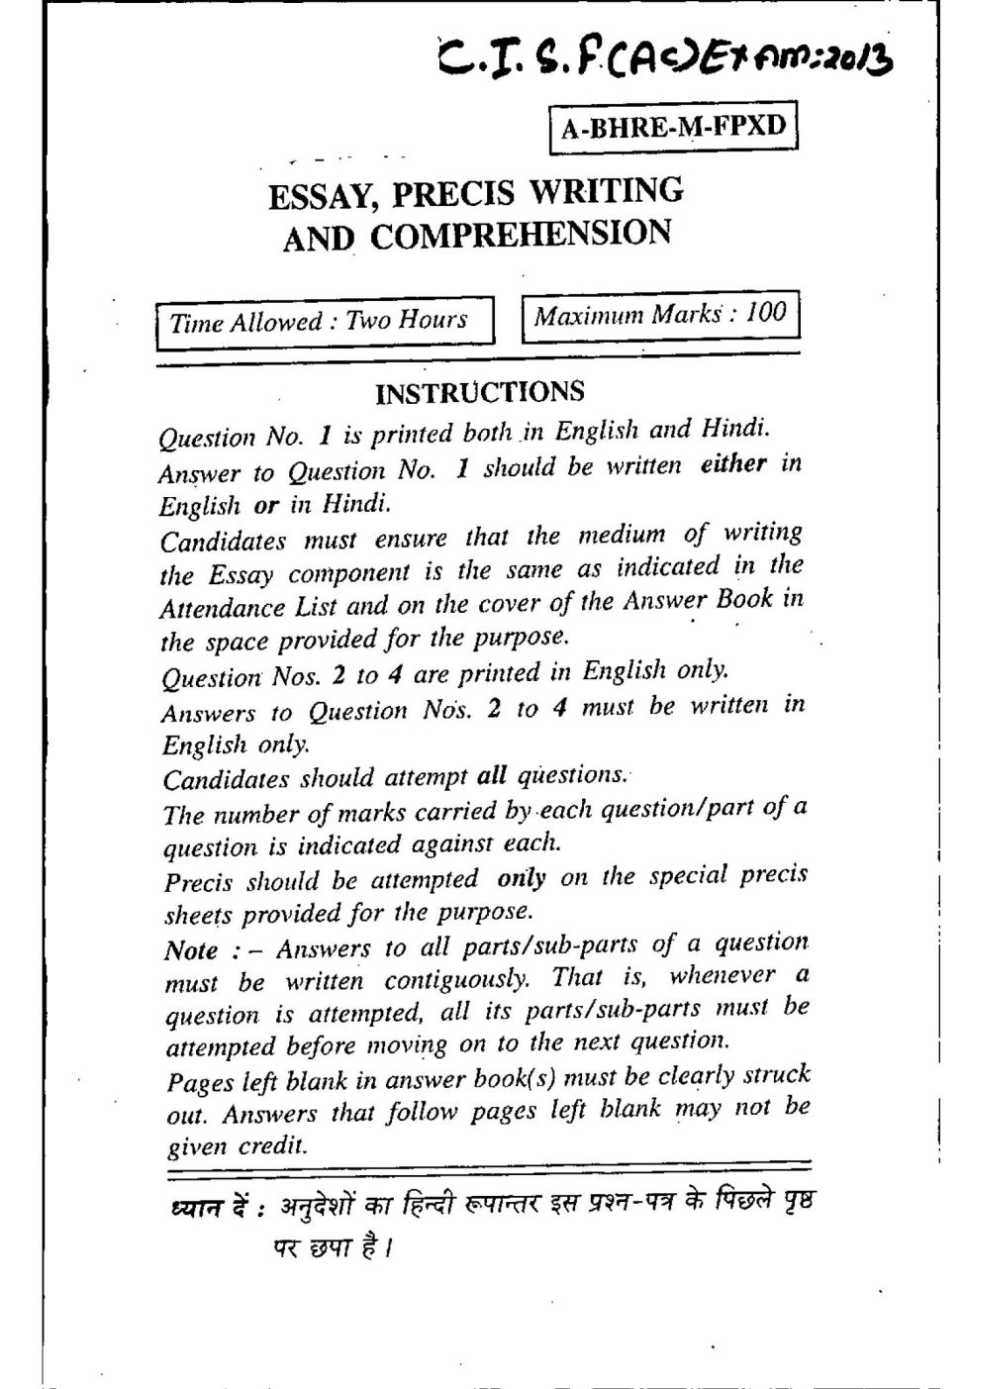 007 Bar Essays Essay For Exam On Exams Student Services The How To Write Good Upsc Cisf Ltd Departmental Competitive Precis Writing And Comp California Incredible Baressays Coupon Code Baressays.com Ny Predictions Full